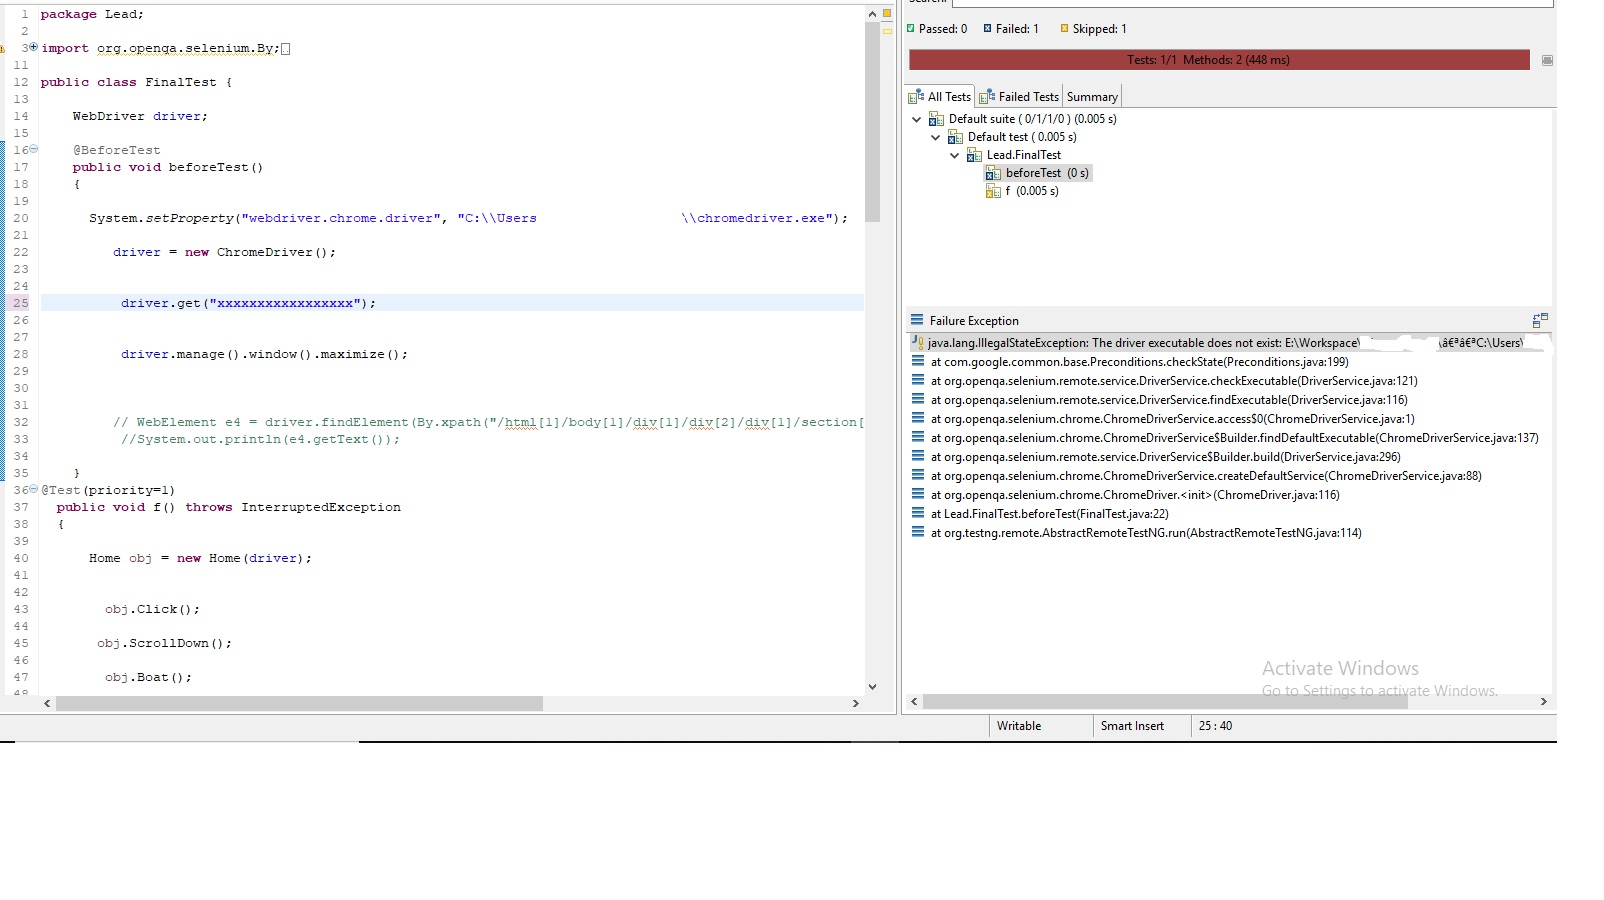 java.lang.IllegalStateException: The driver executable